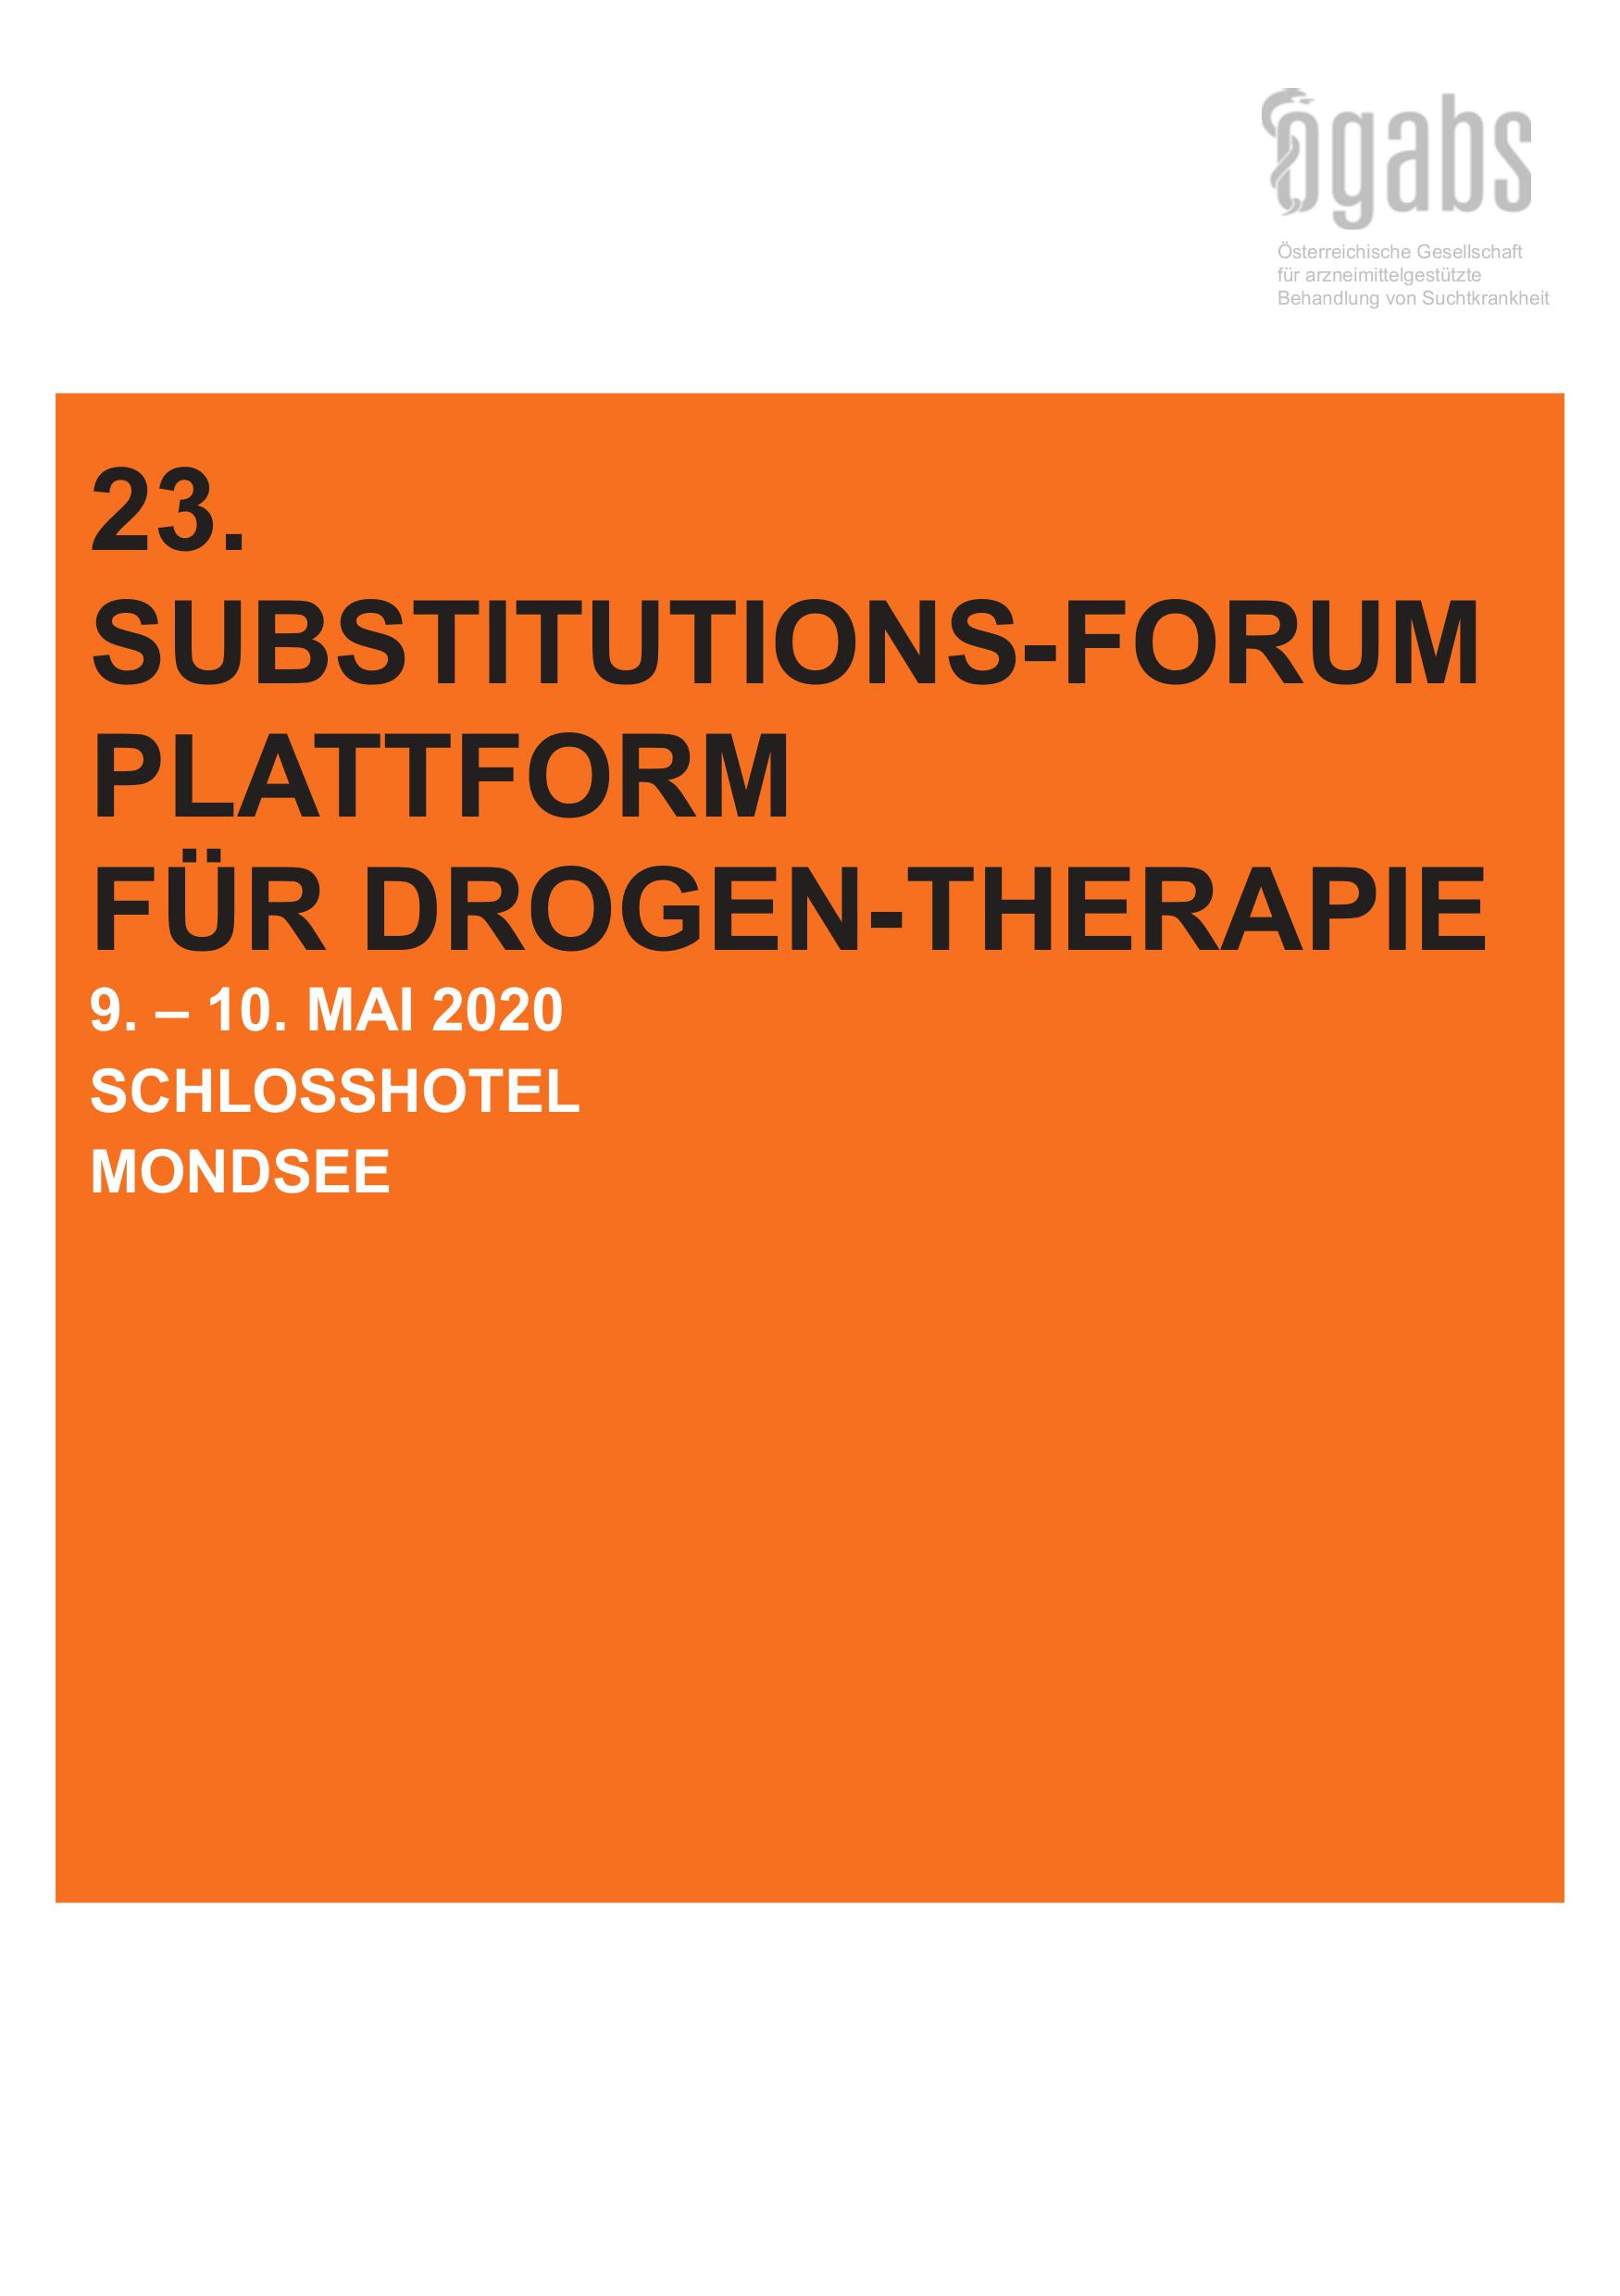 23. Substitutions-Forum